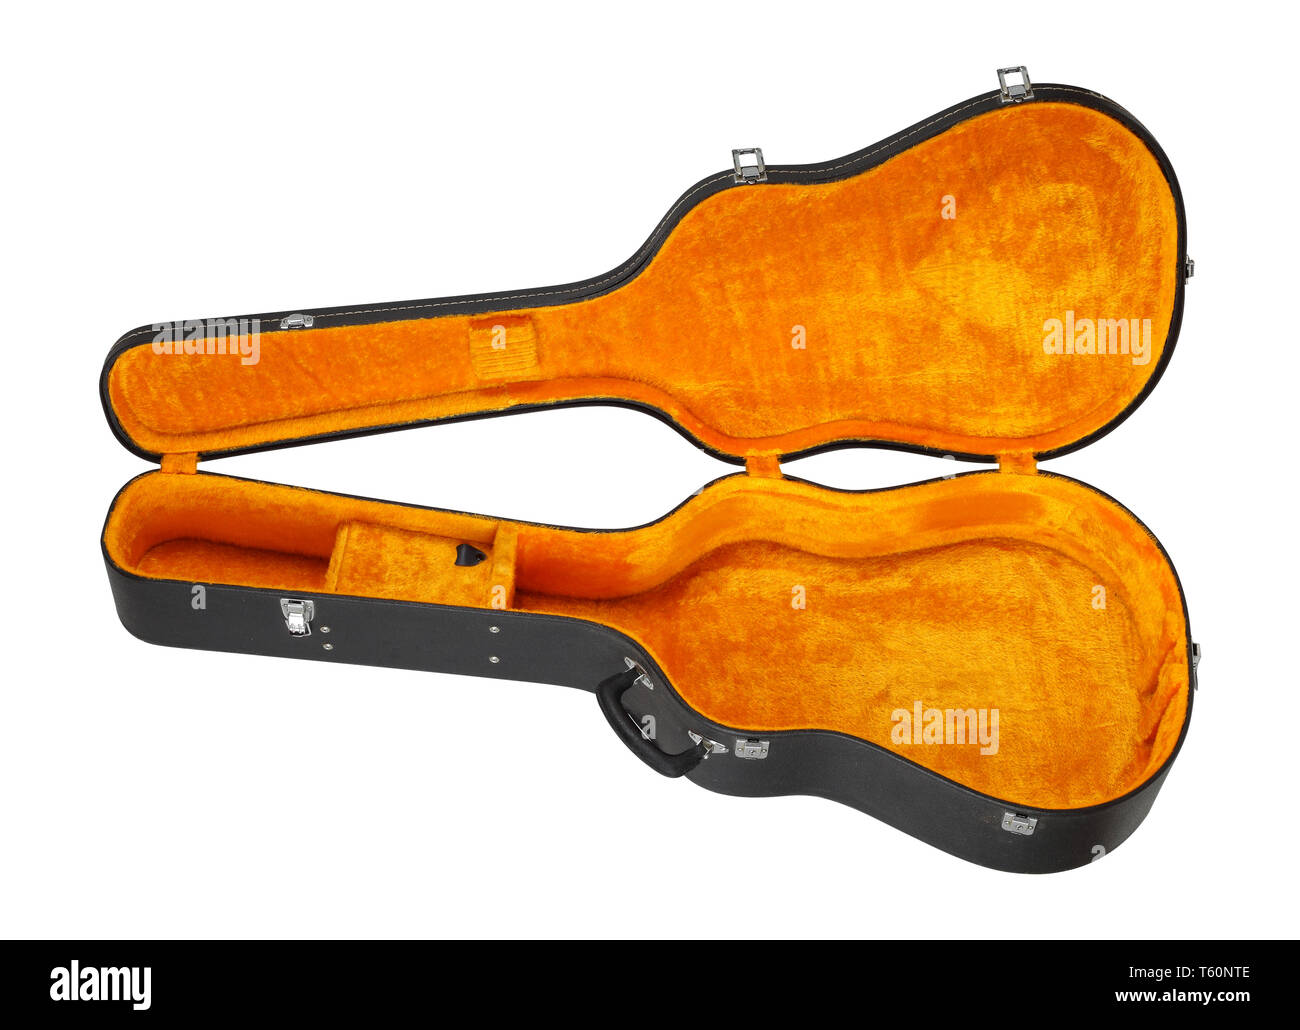 Musical instrument - Open black and yellow acoustic guitar hard case isolated on a wooden background - Stock Image